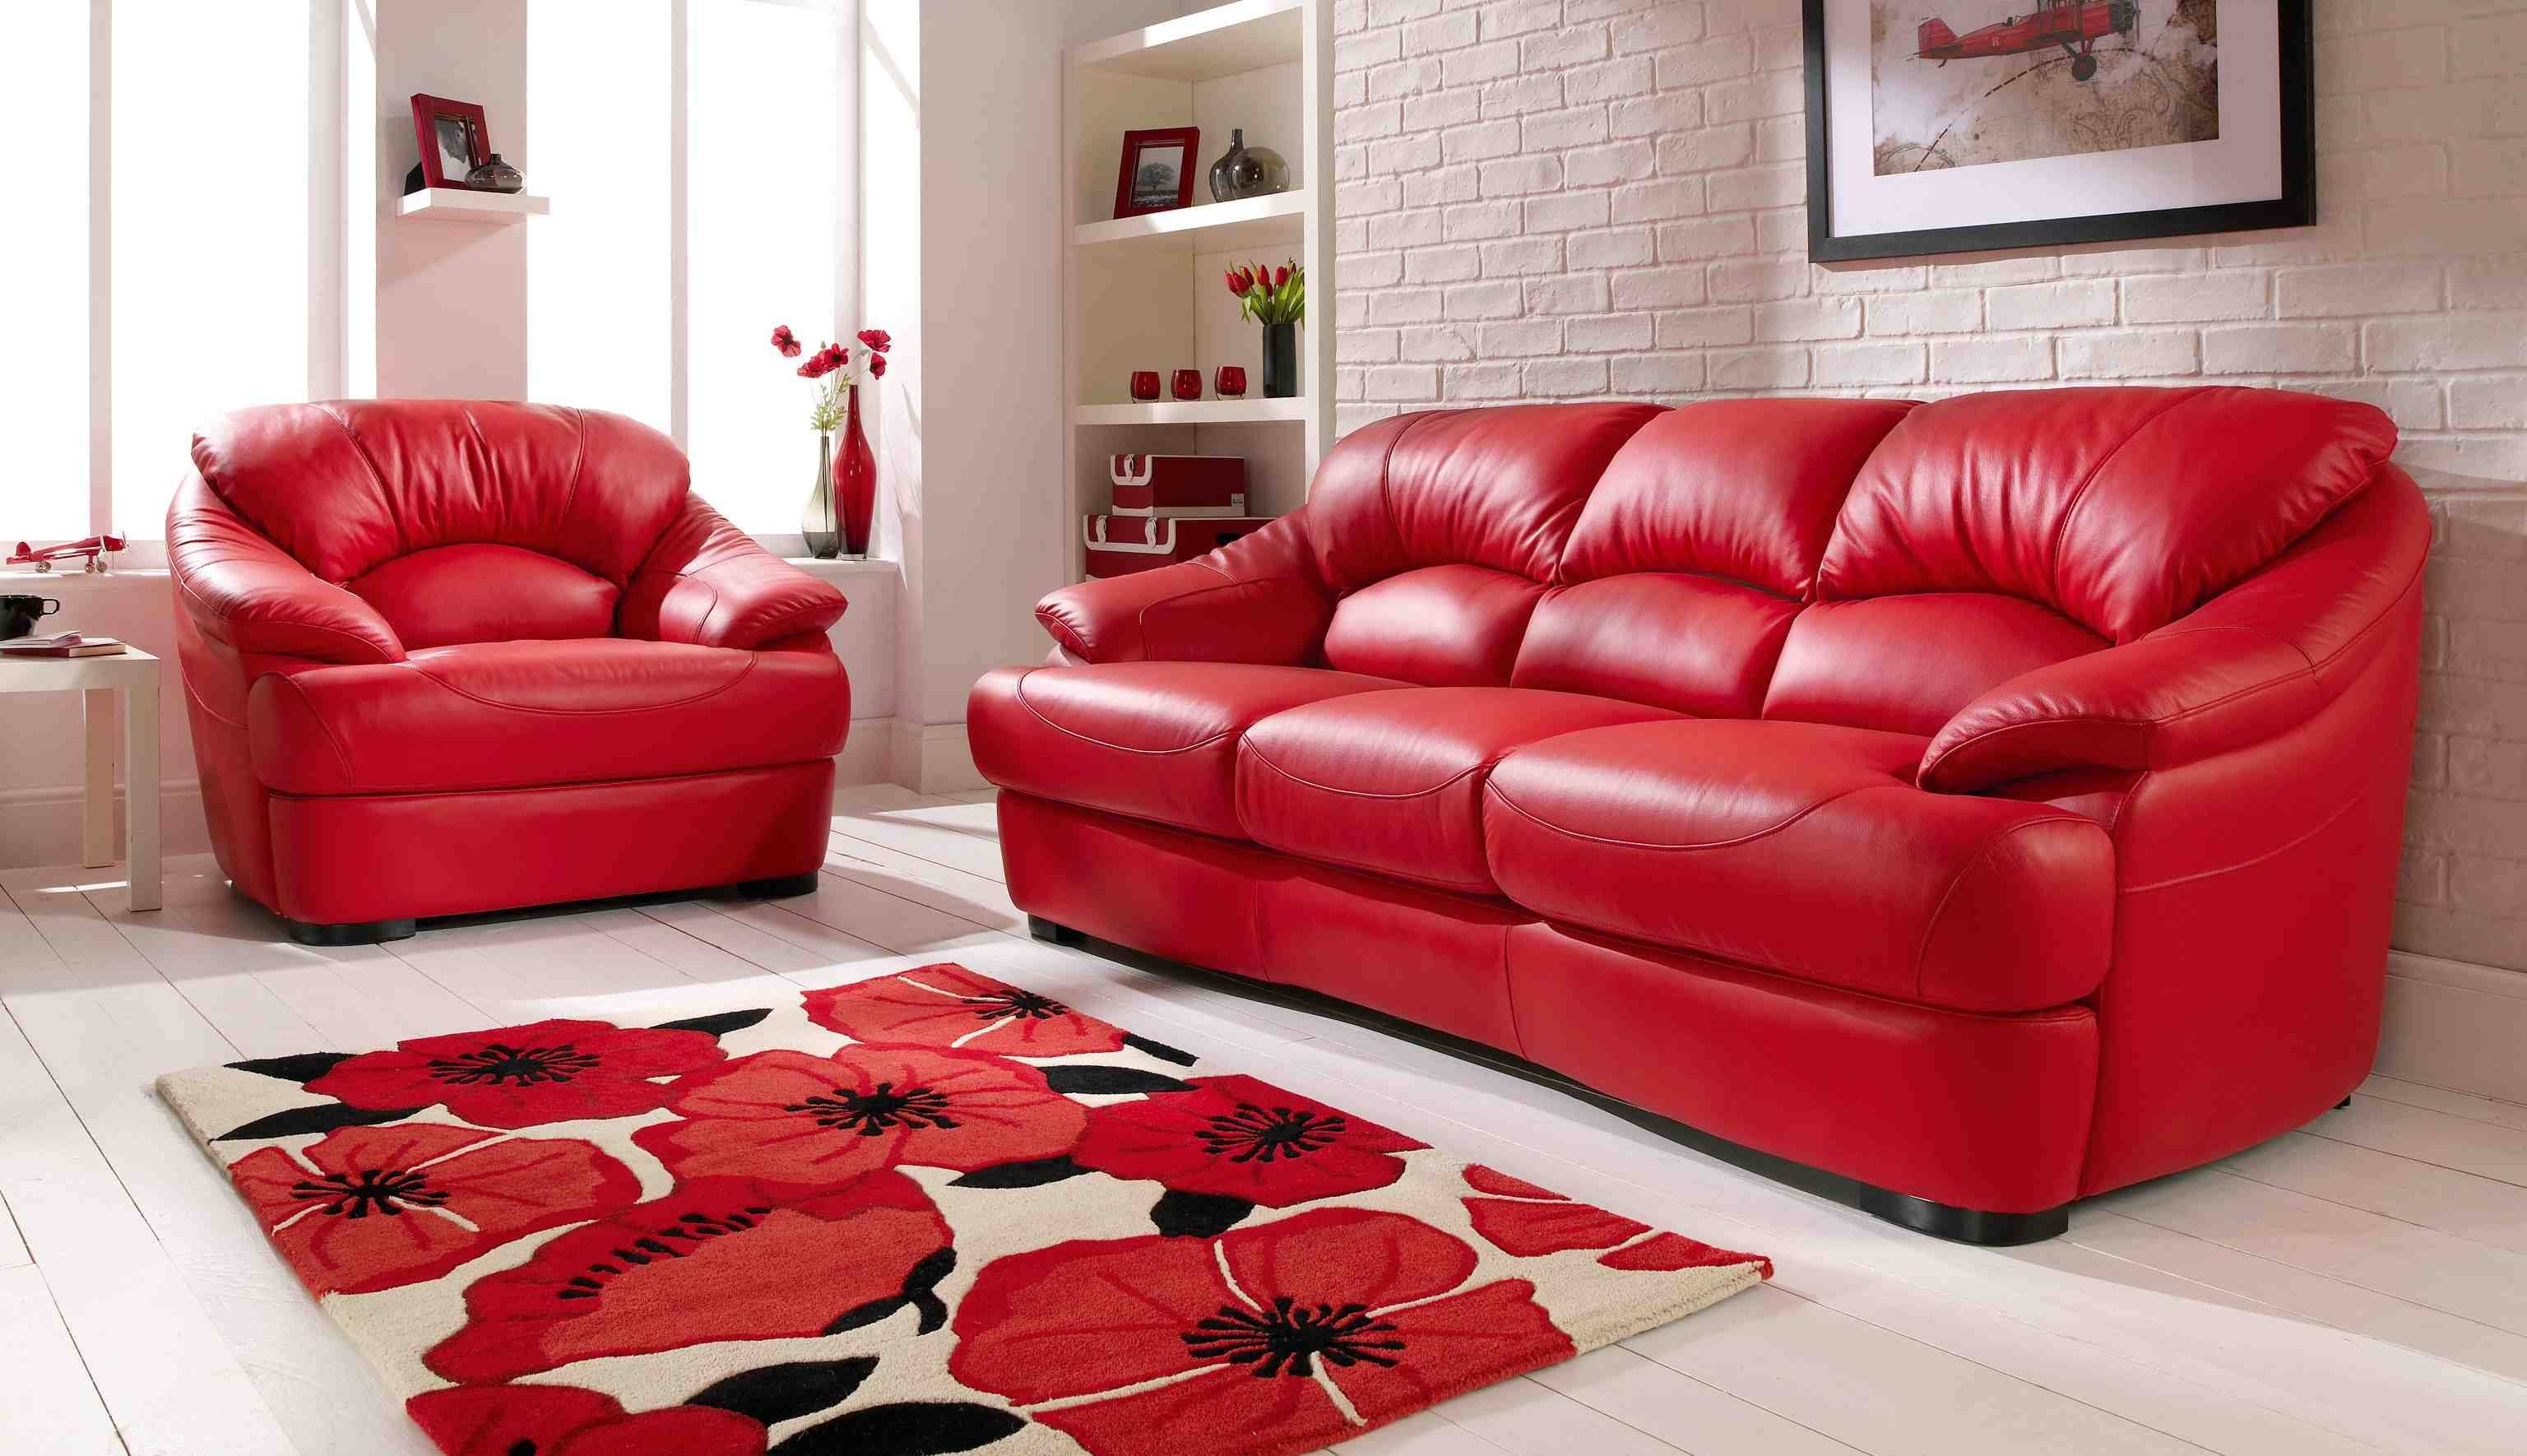 Red Sofas Cheap | Tehranmix Decoration in Red Sofas And Chairs (Image 21 of 30)